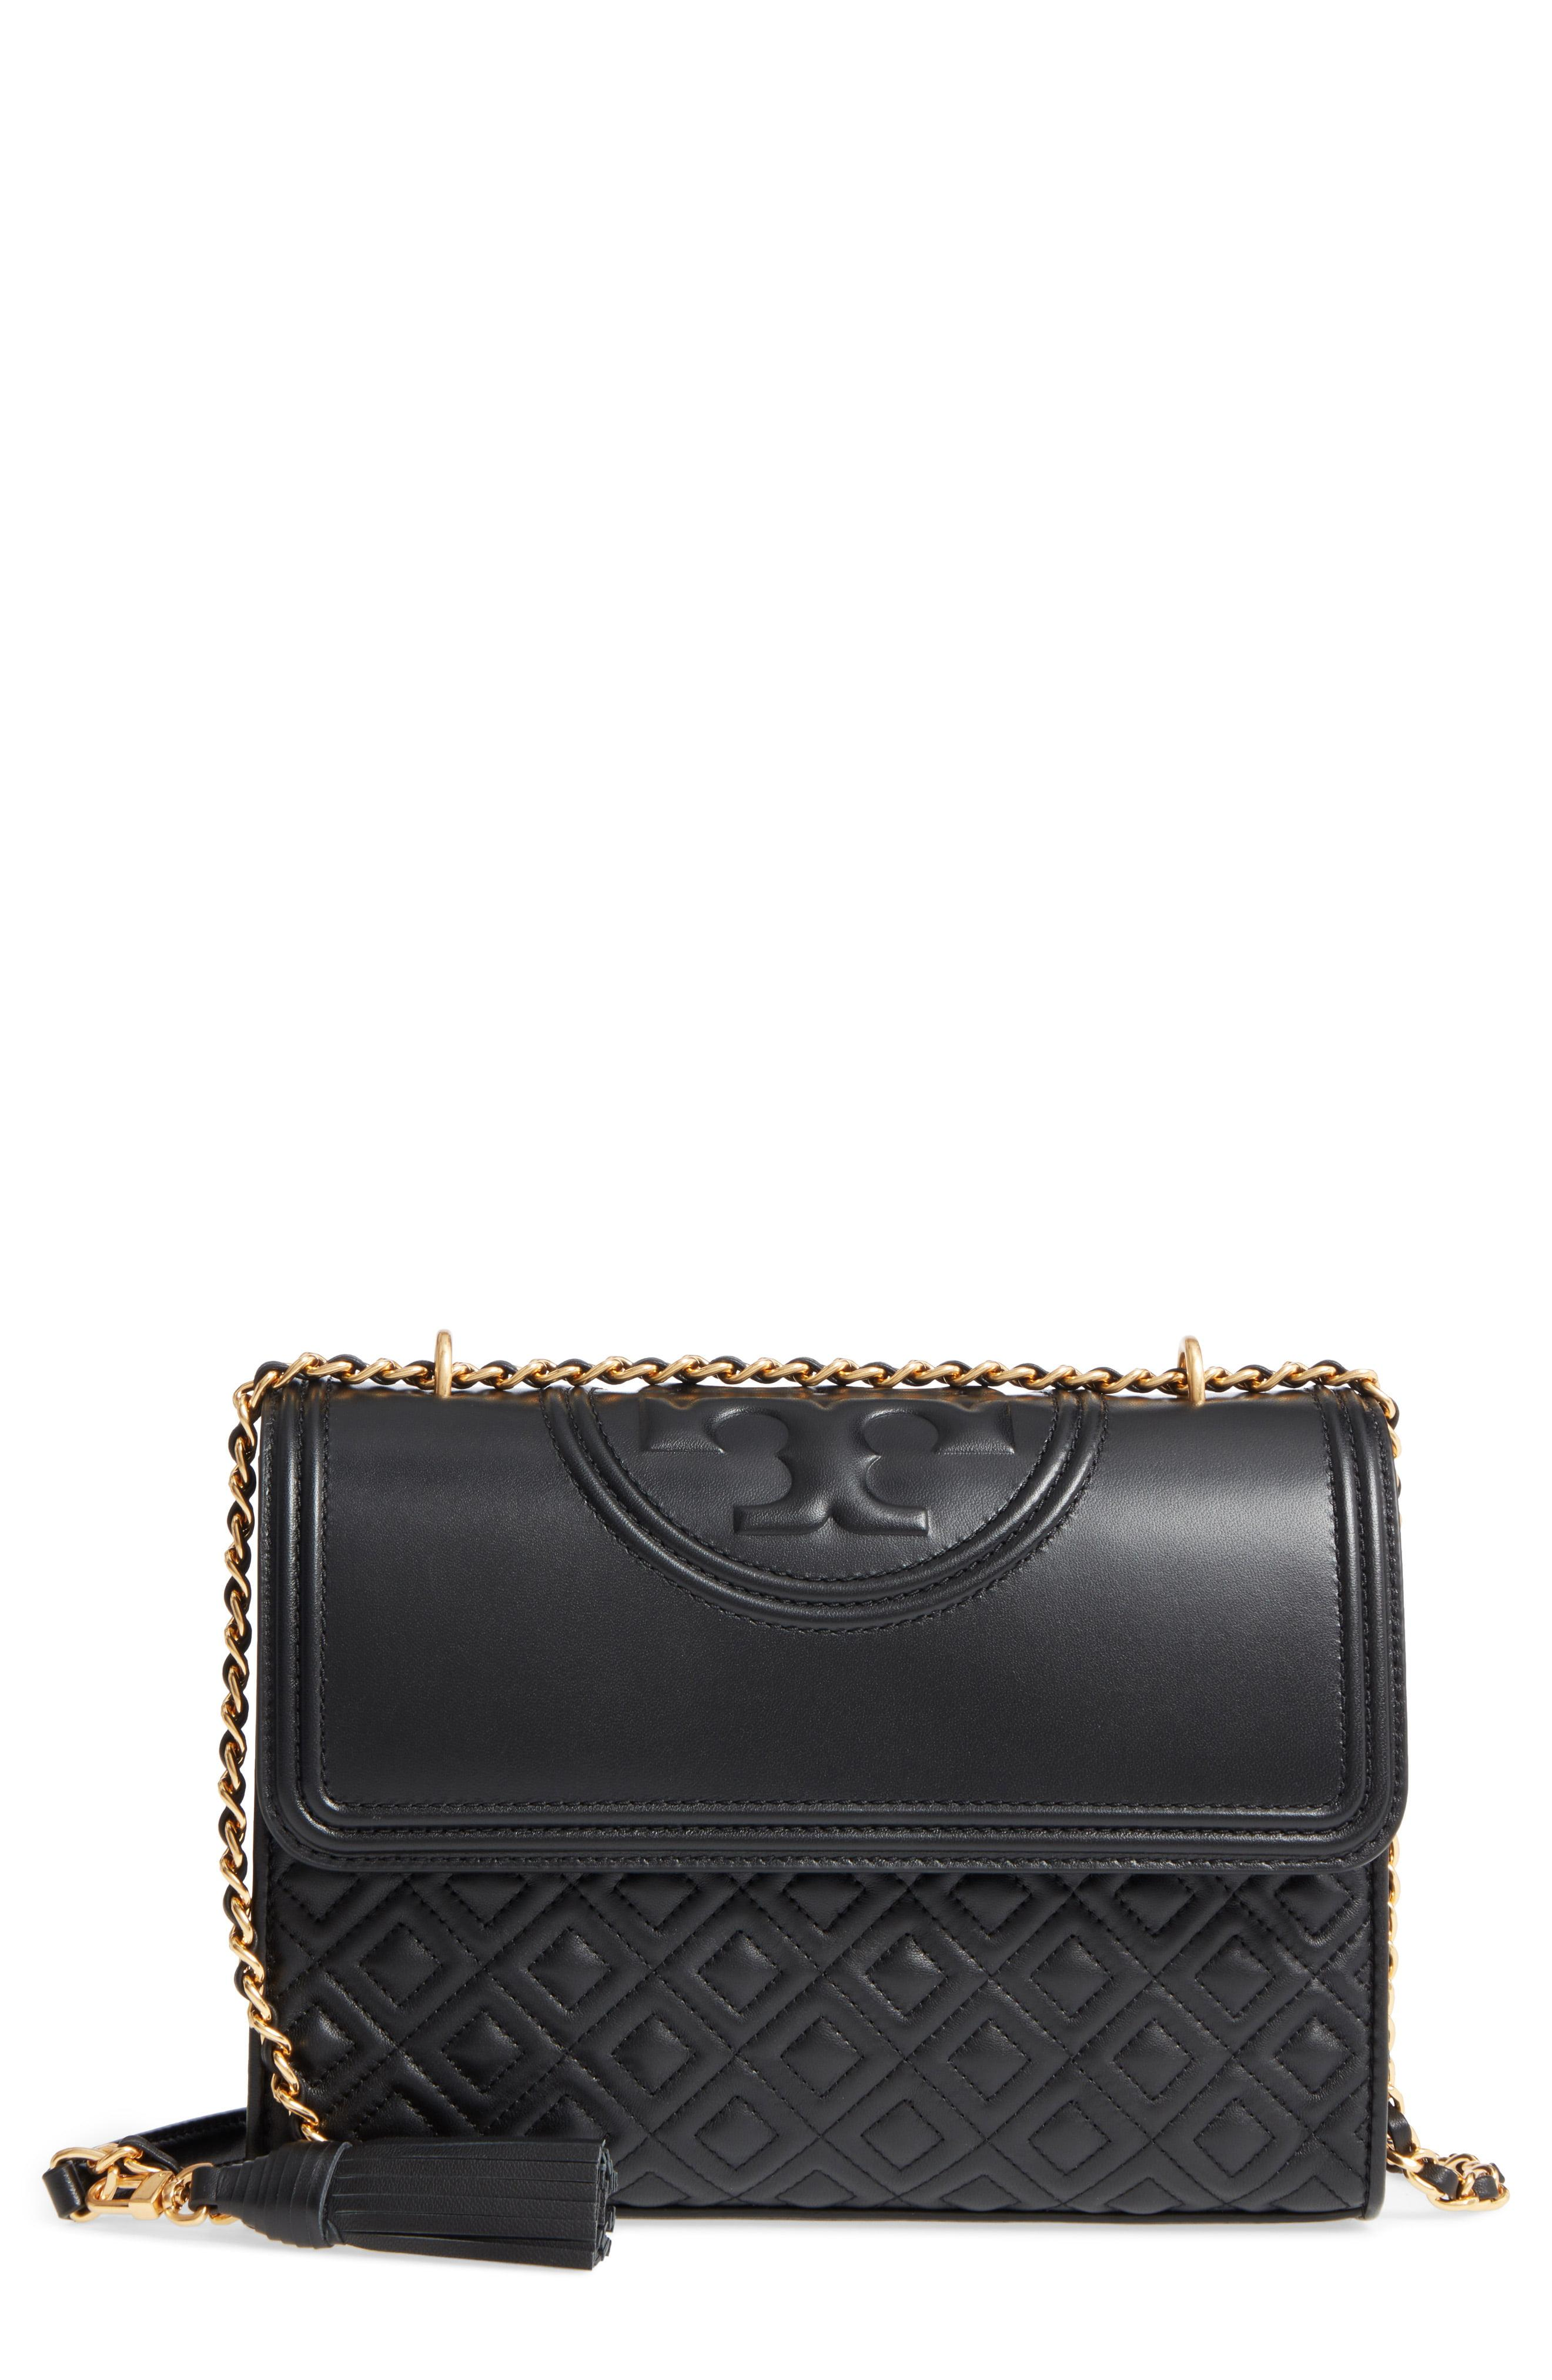 dfcf759bee1 Lyst - Tory Burch Fleming Leather Convertible Shoulder Bag in Black